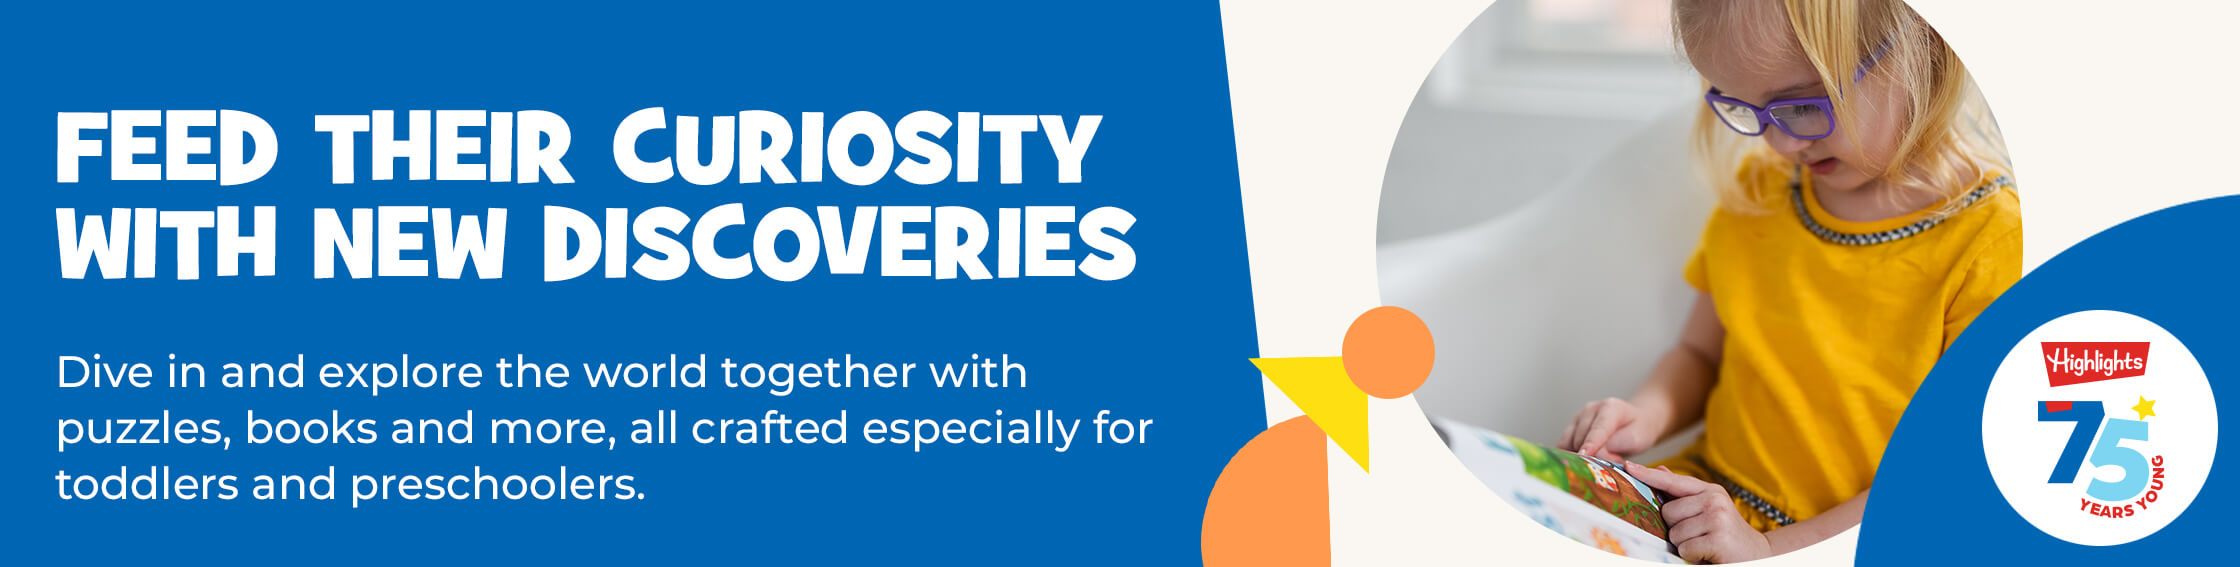 Feed their curiosity with new discoveries you can make together – explore this collection of puzzles, books and more all crafted especially for toddlers and preschoolers.